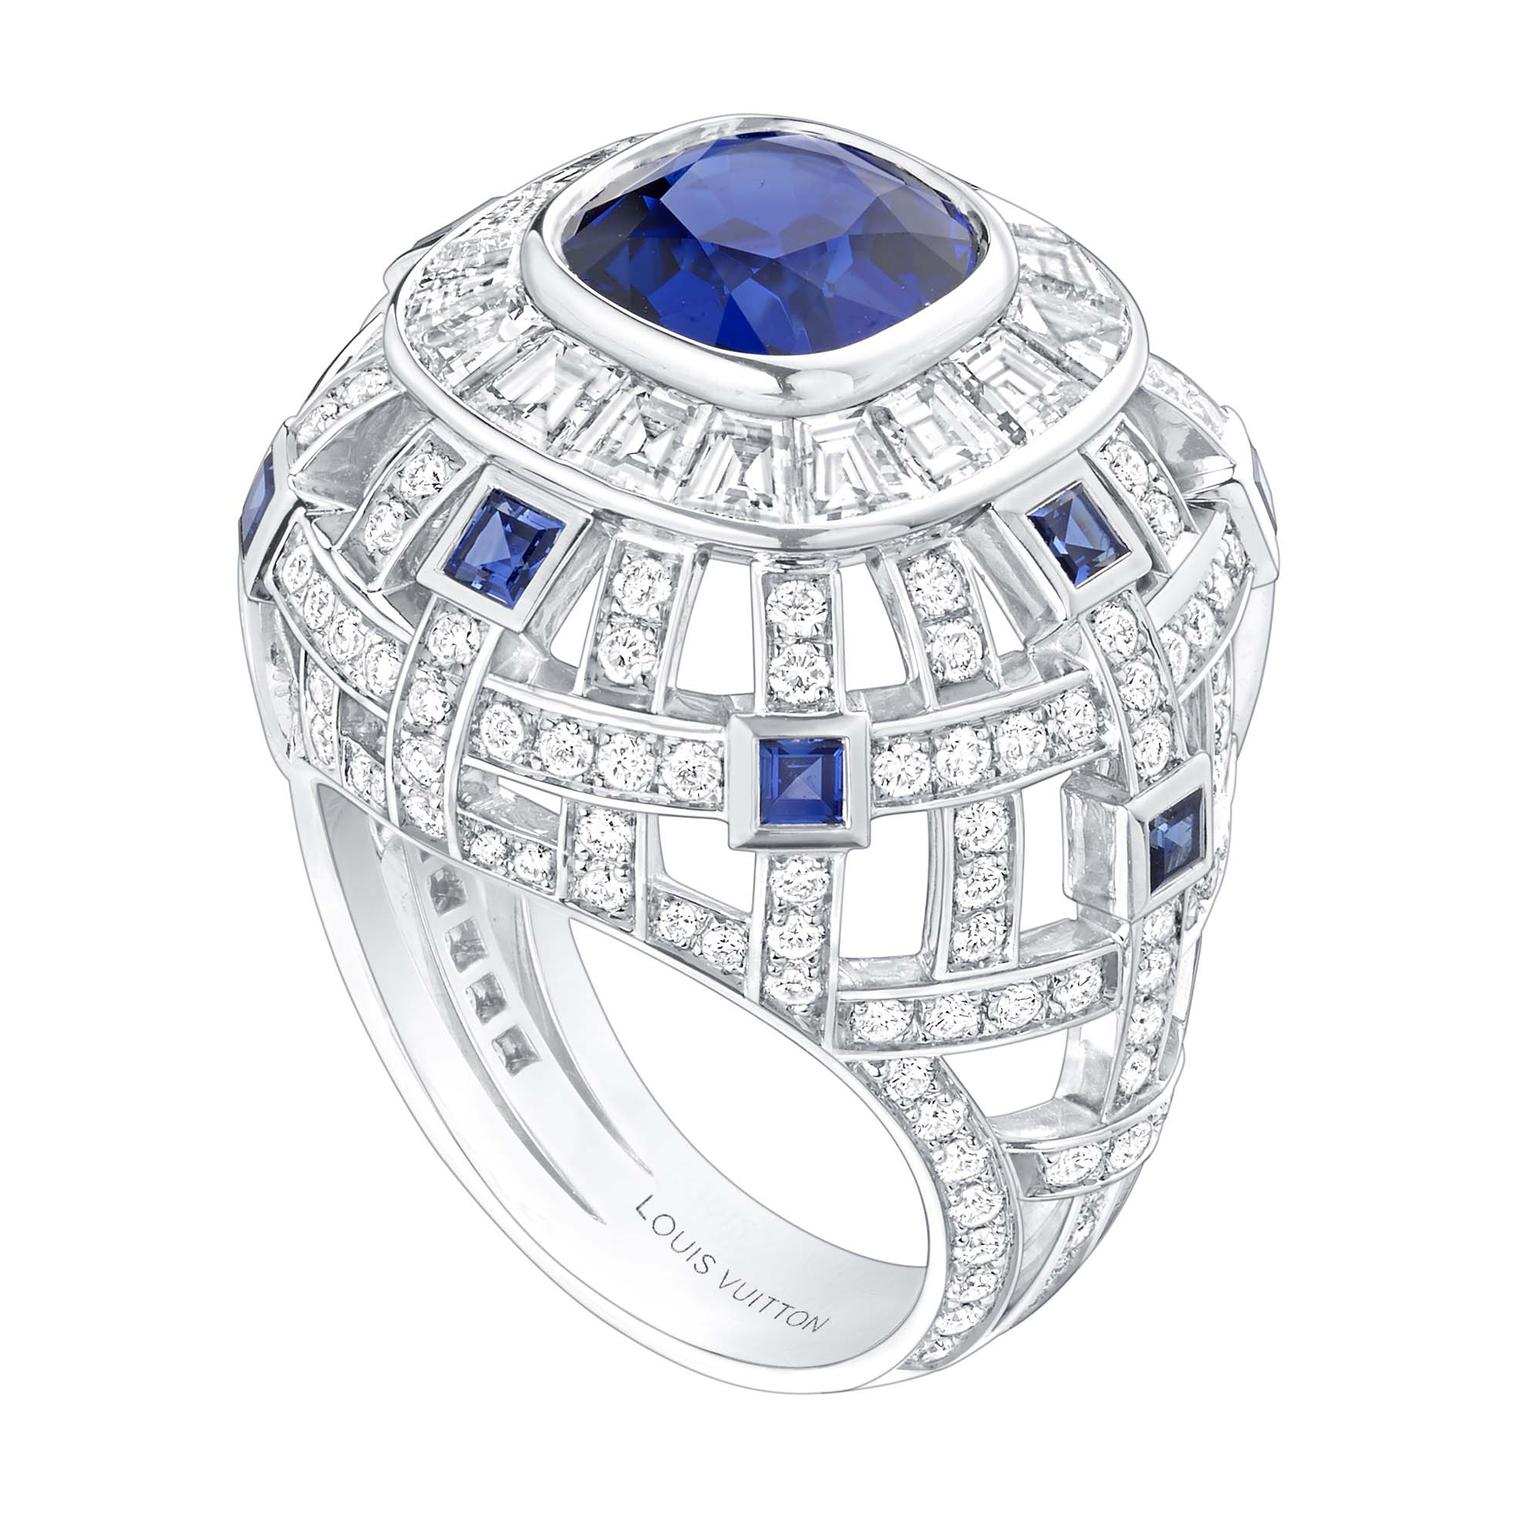 Louis Vuitton Riders of the Knights Le Royaume diamond and sapphire ring